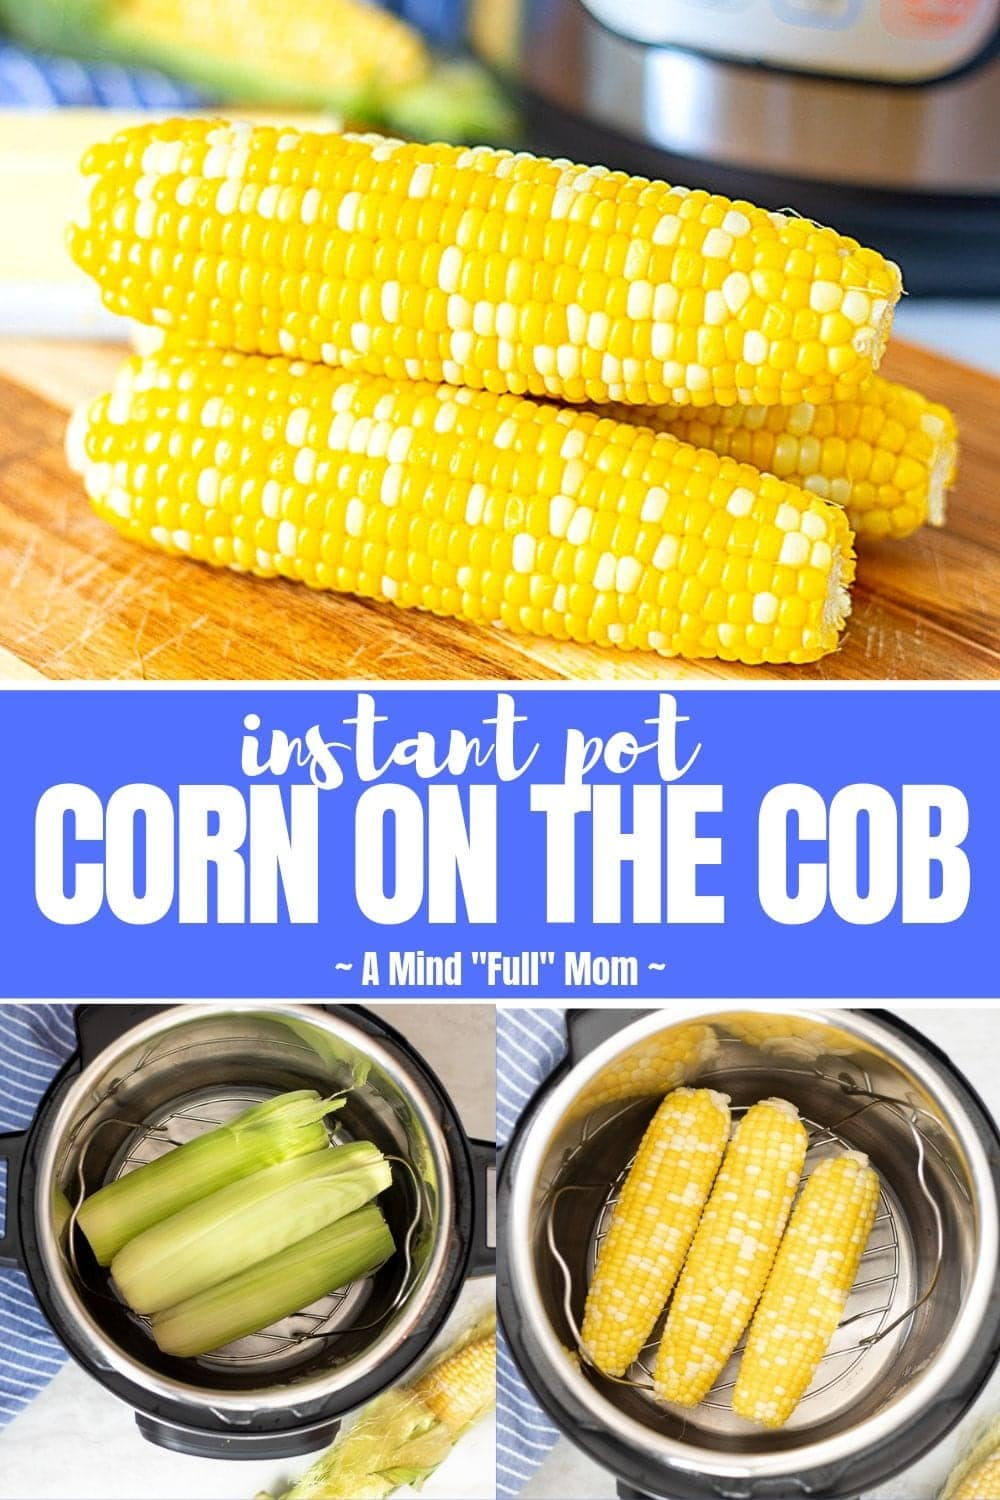 You will NEVER make corn on the cob any other way once you try out this Instant Pot Corn on the Cob! Corn on the cob turns out perfectly in the pressure cooker with or without the husks!